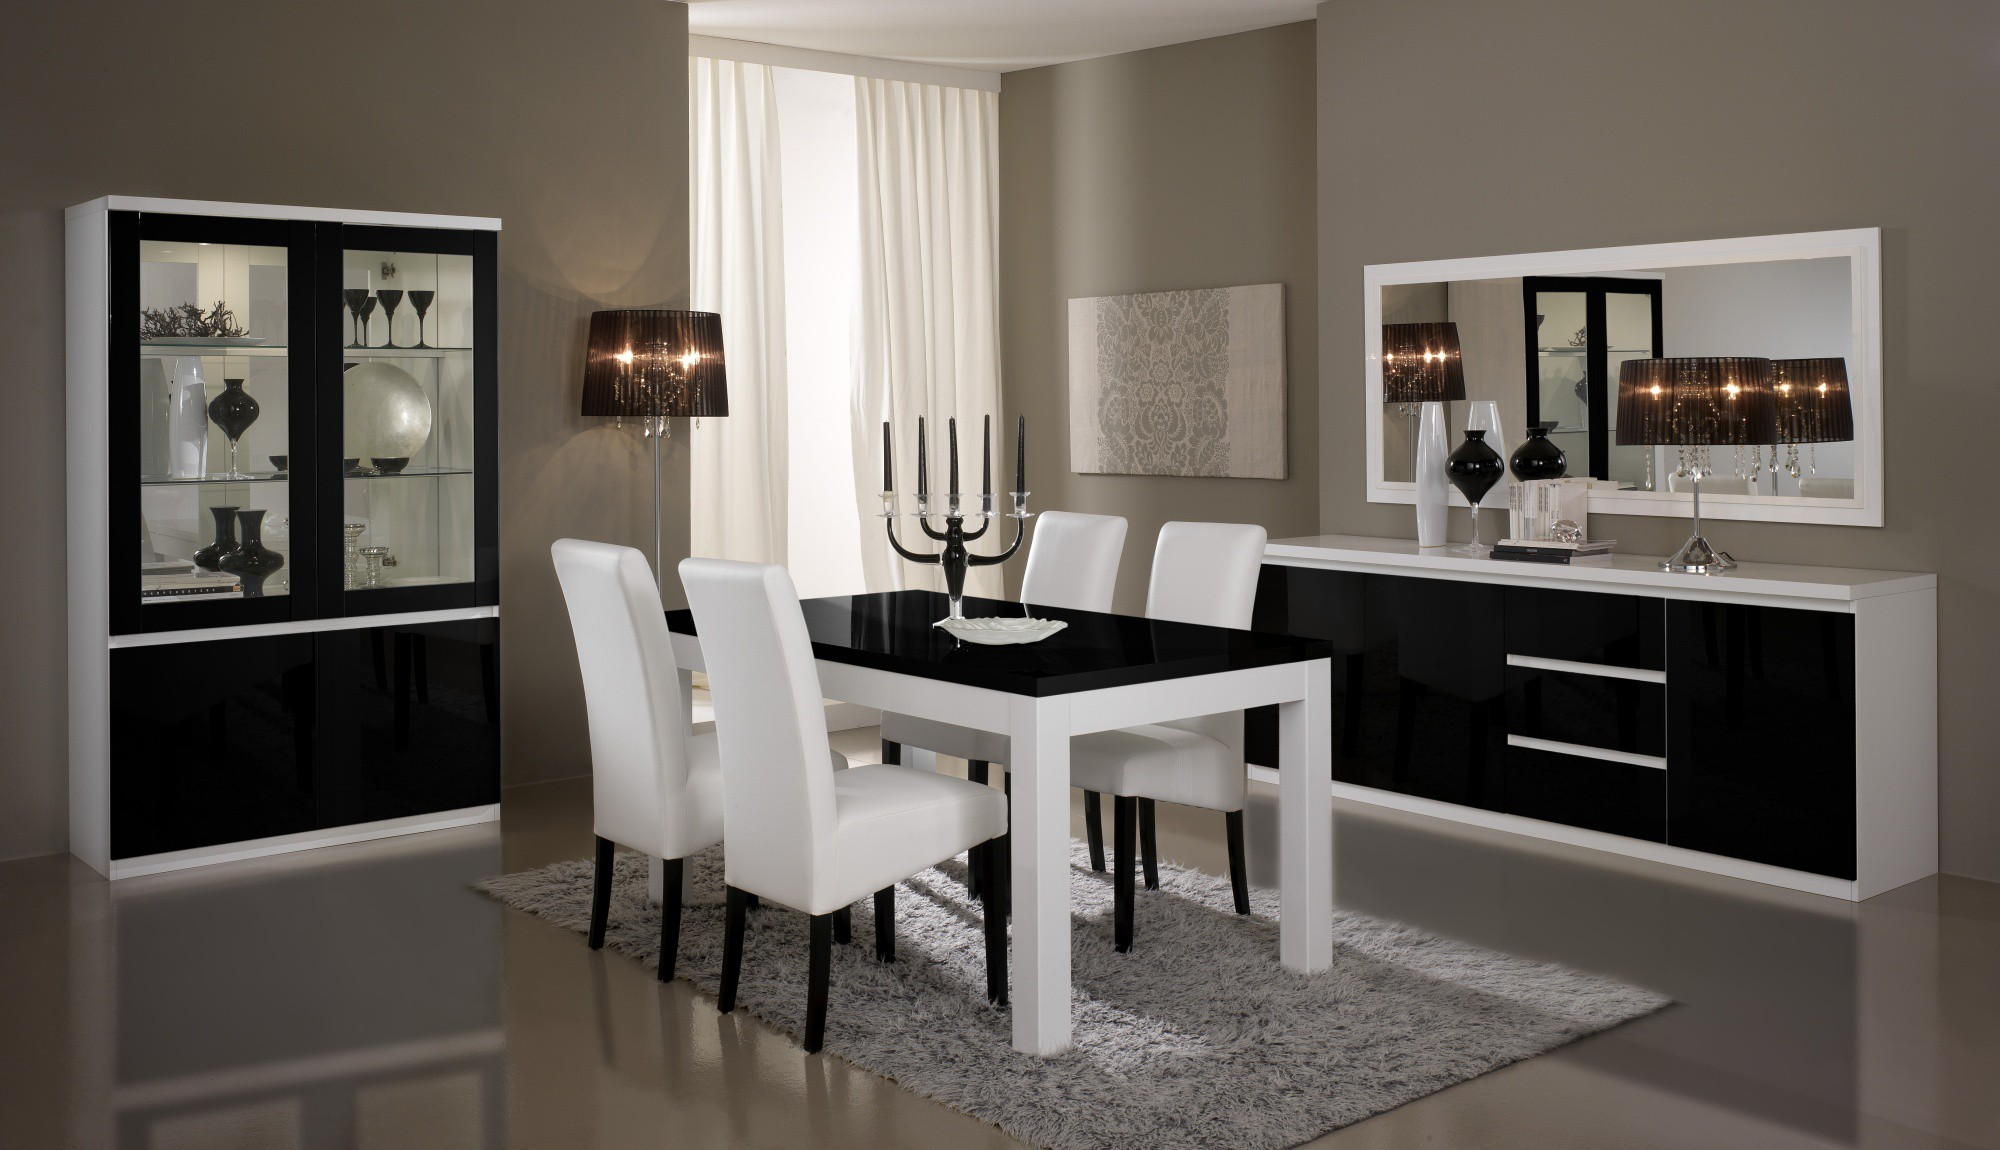 salles manger design d co. Black Bedroom Furniture Sets. Home Design Ideas